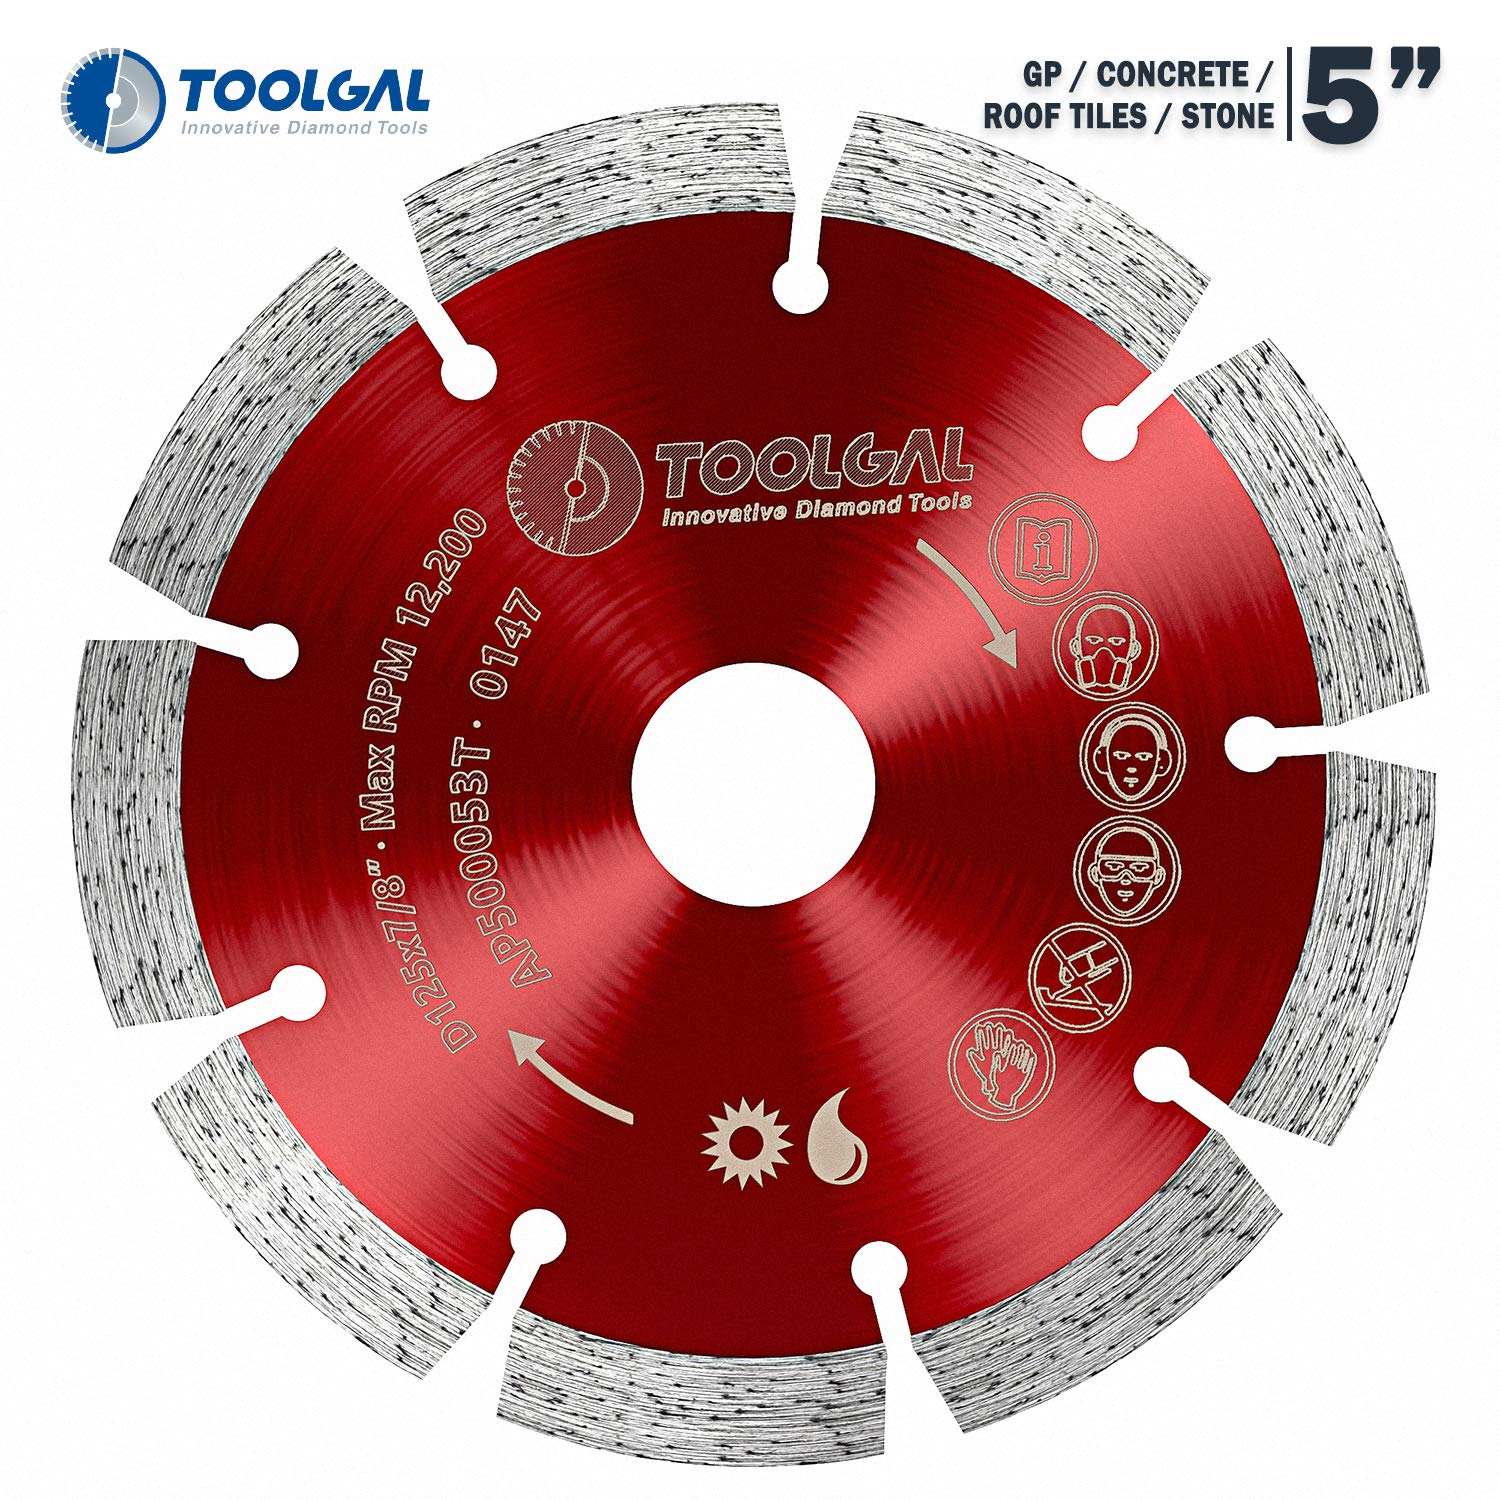 """TOOLGAL Diamond Blade 5"""" for Masonry - Wet and Dry Cutting of Concrete/Tiles/Stone - ⅞"""" Arbor fit to Angle Grinders, Circular Saws, Masonry Saws, Tilesaw and Cutoff Cutters"""